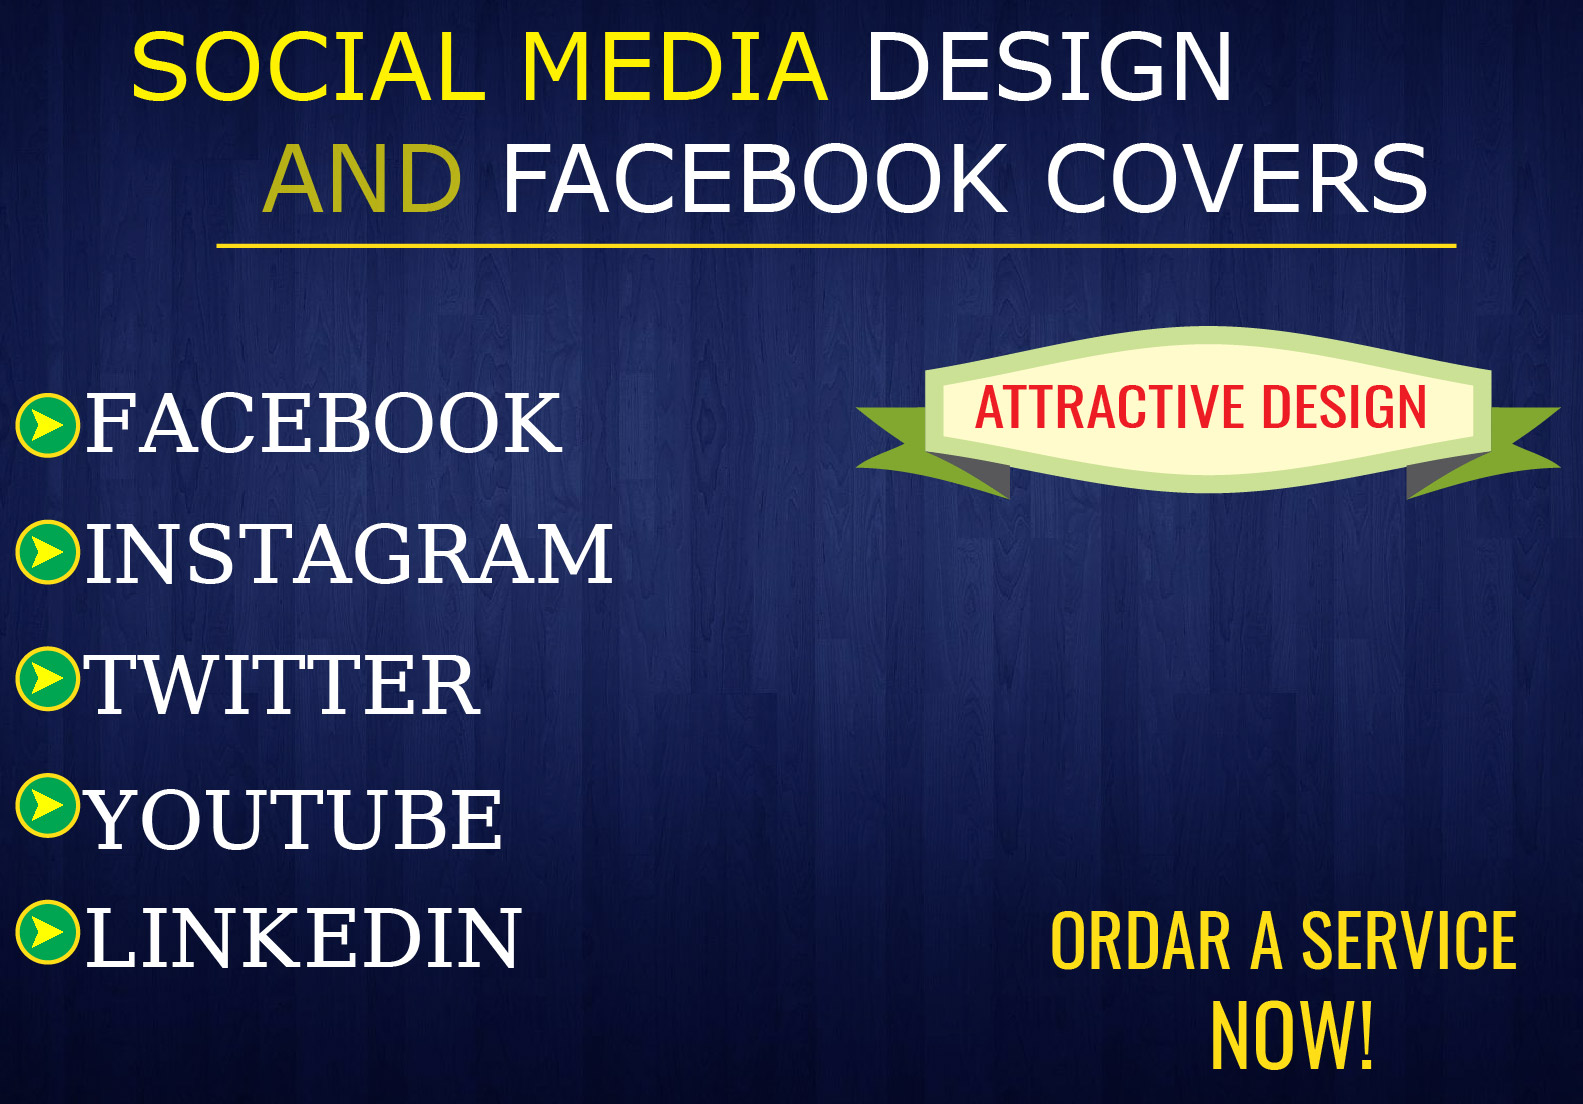 I Will Provide 10 Amazing High Quality Social Media Banner Design